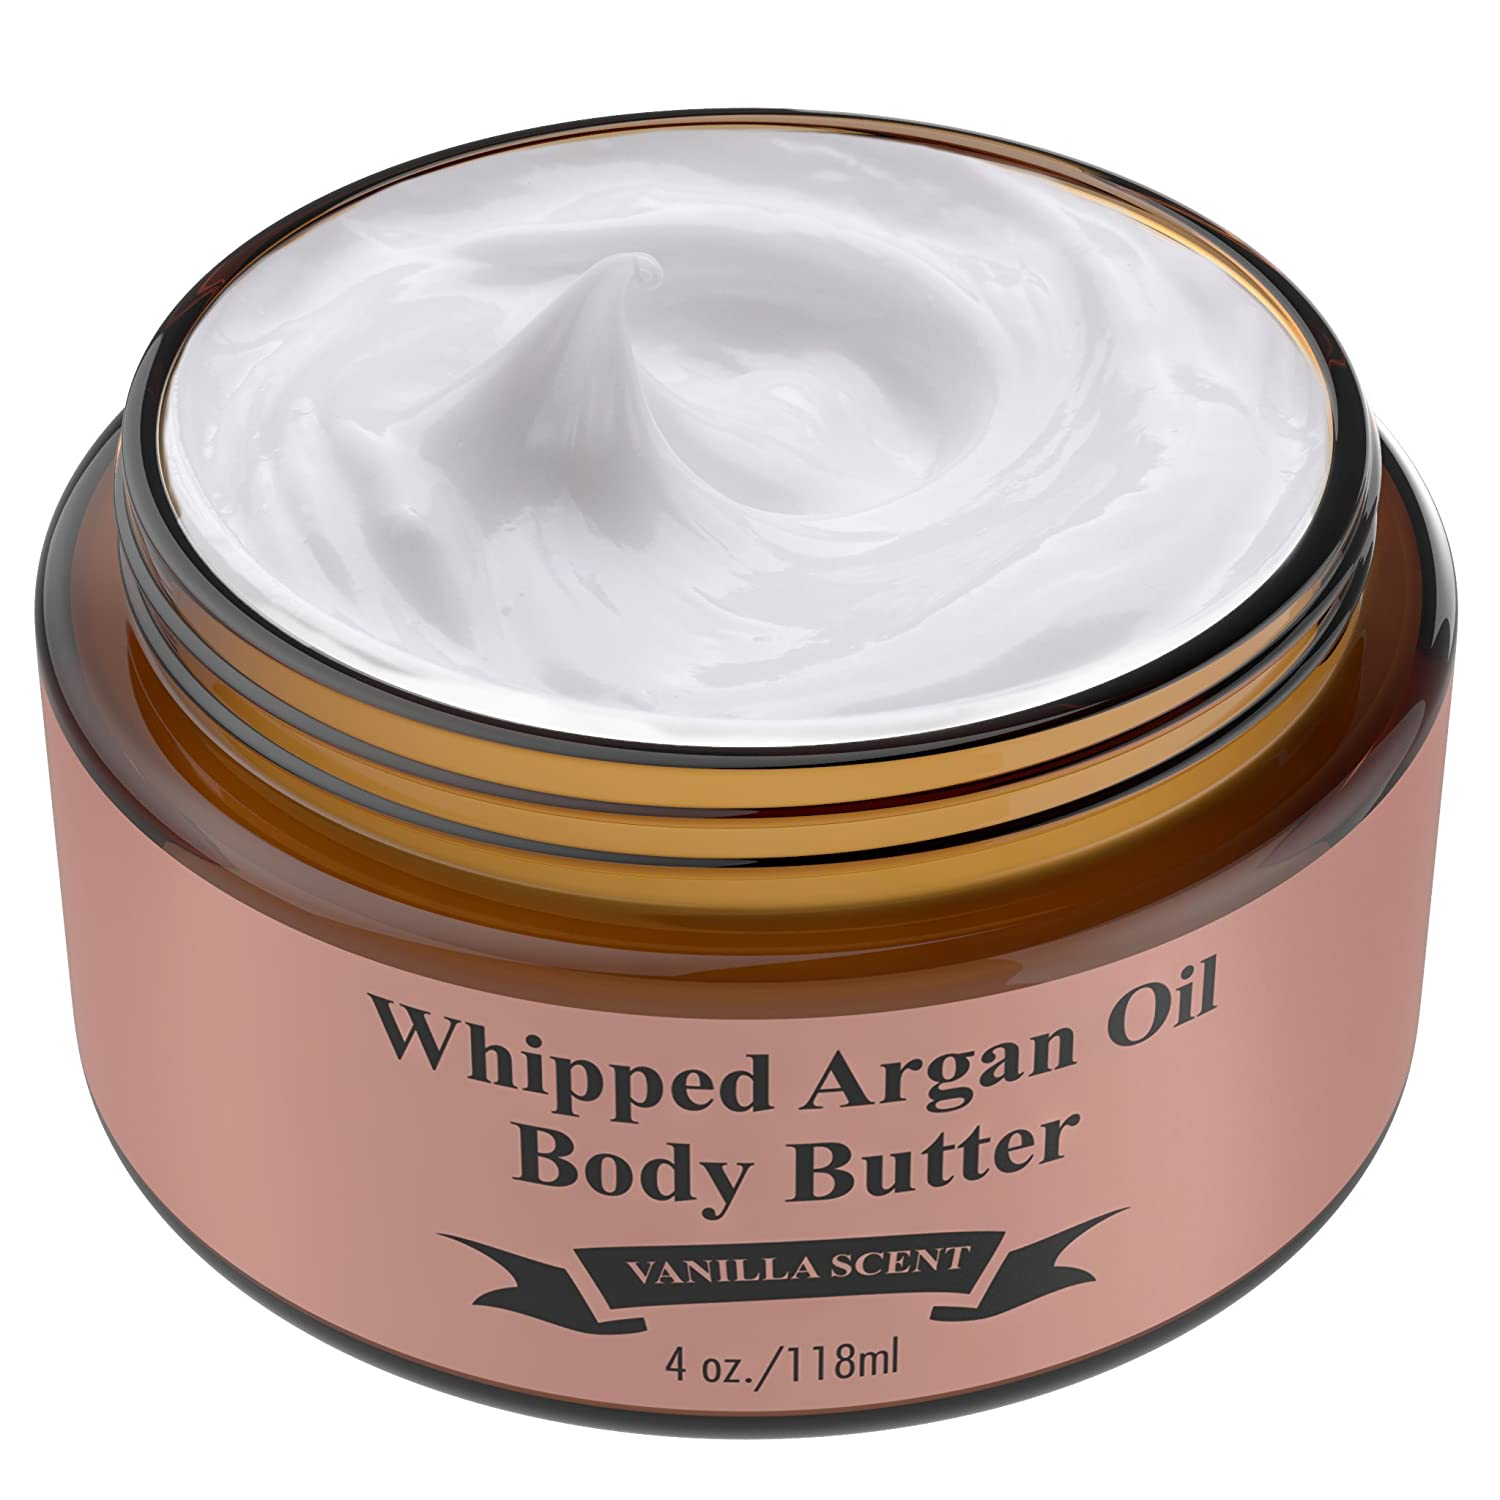 Whipped Argan Oil Body Butter Cream